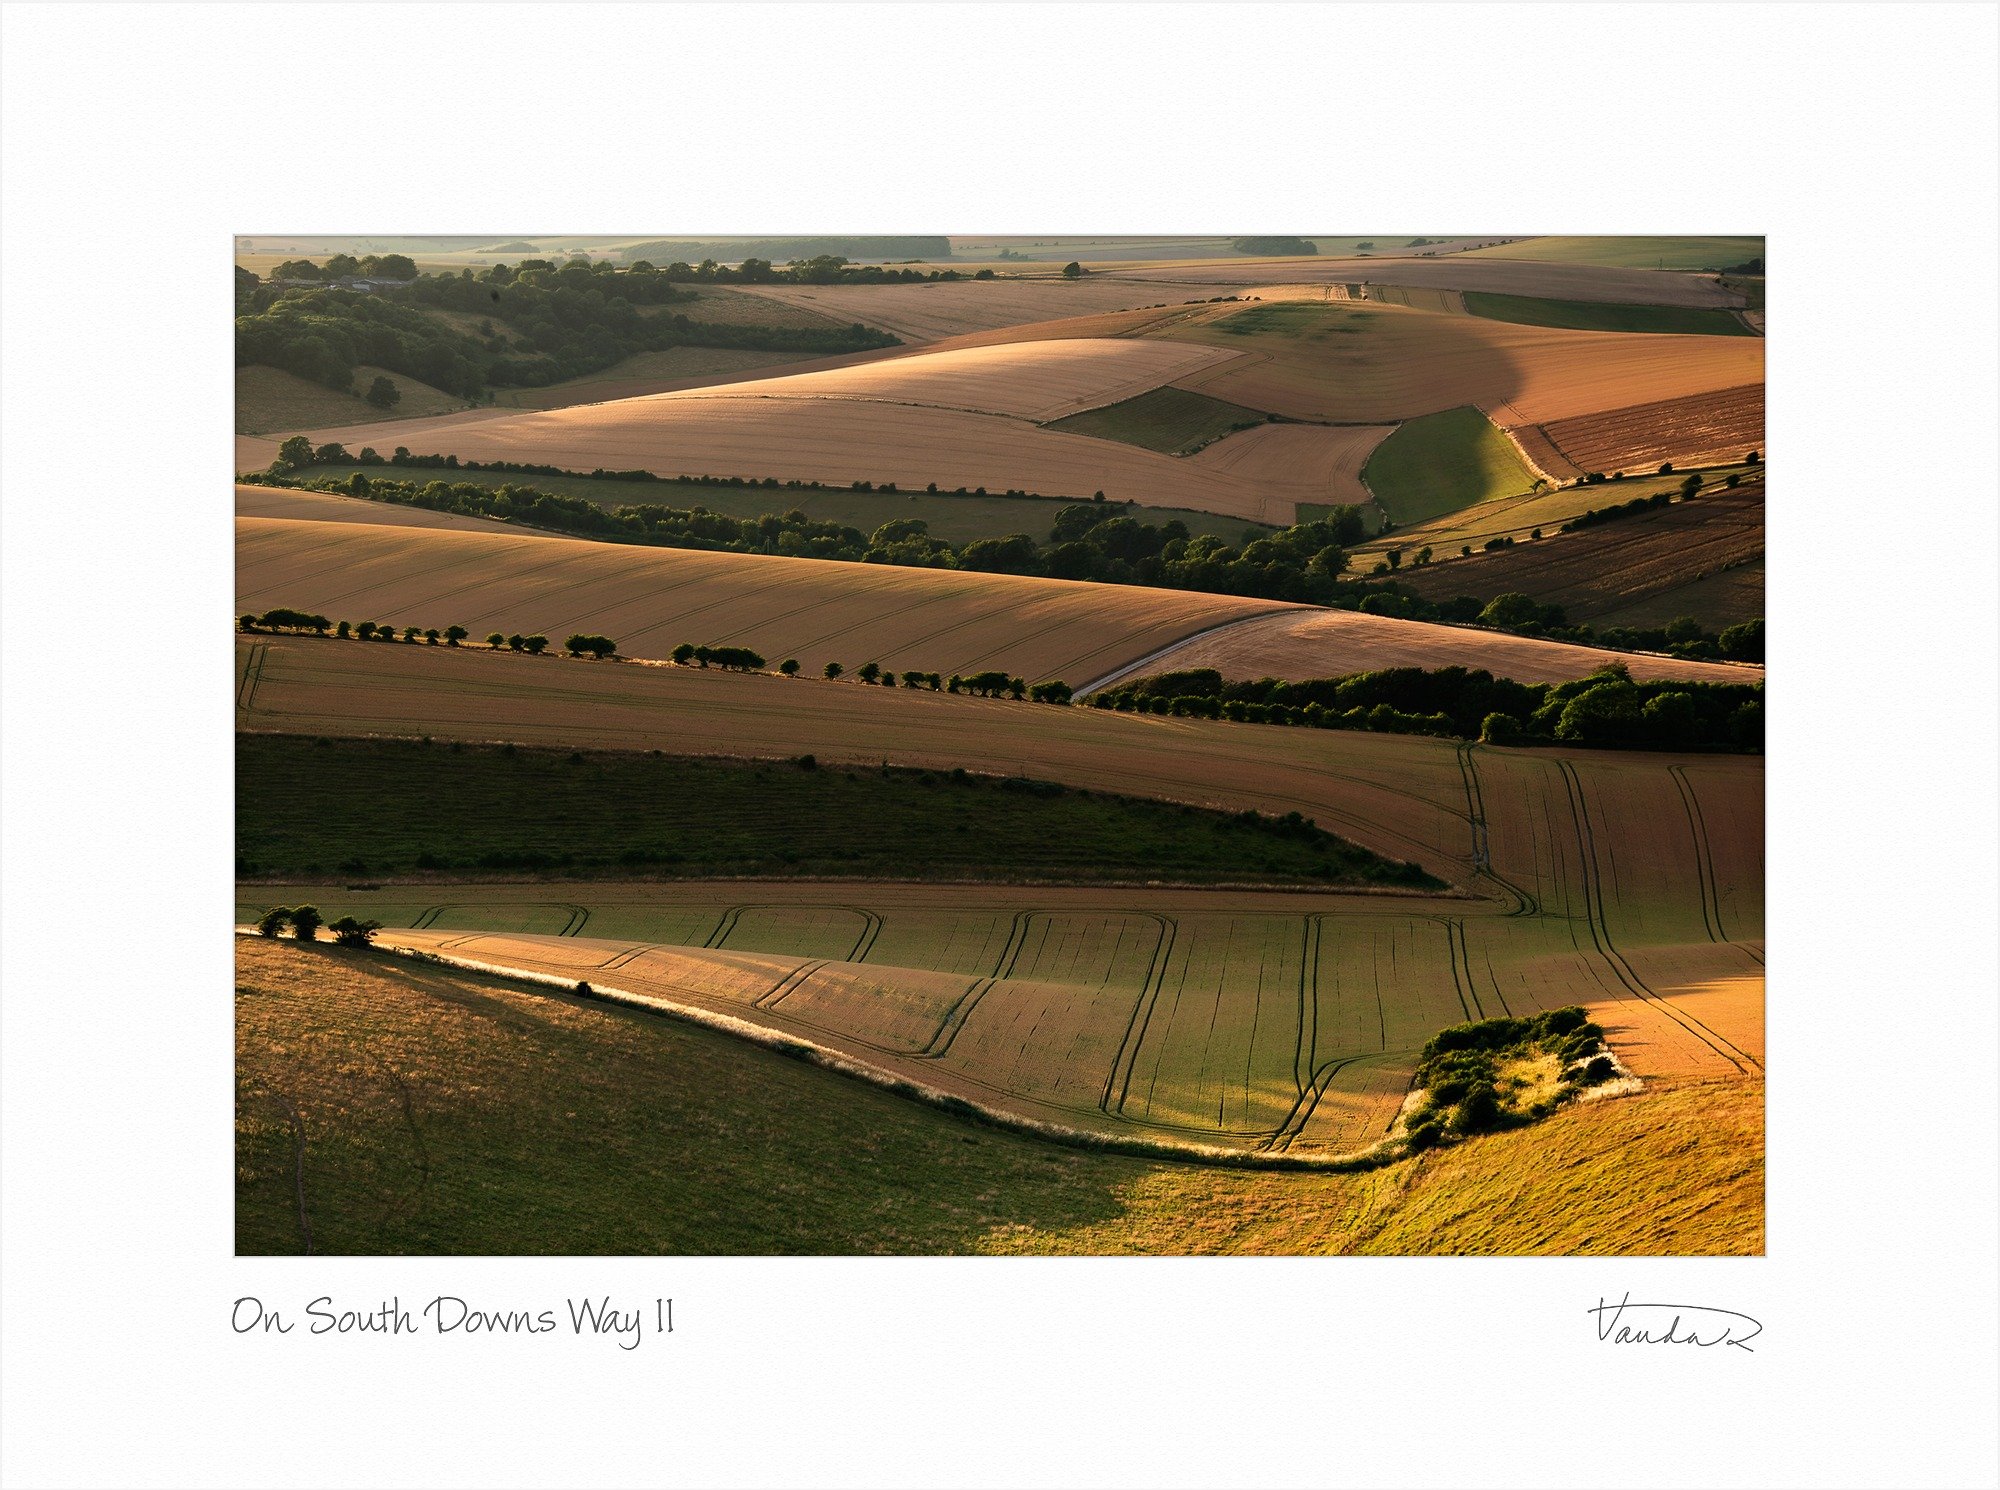 On Southdowns Way II